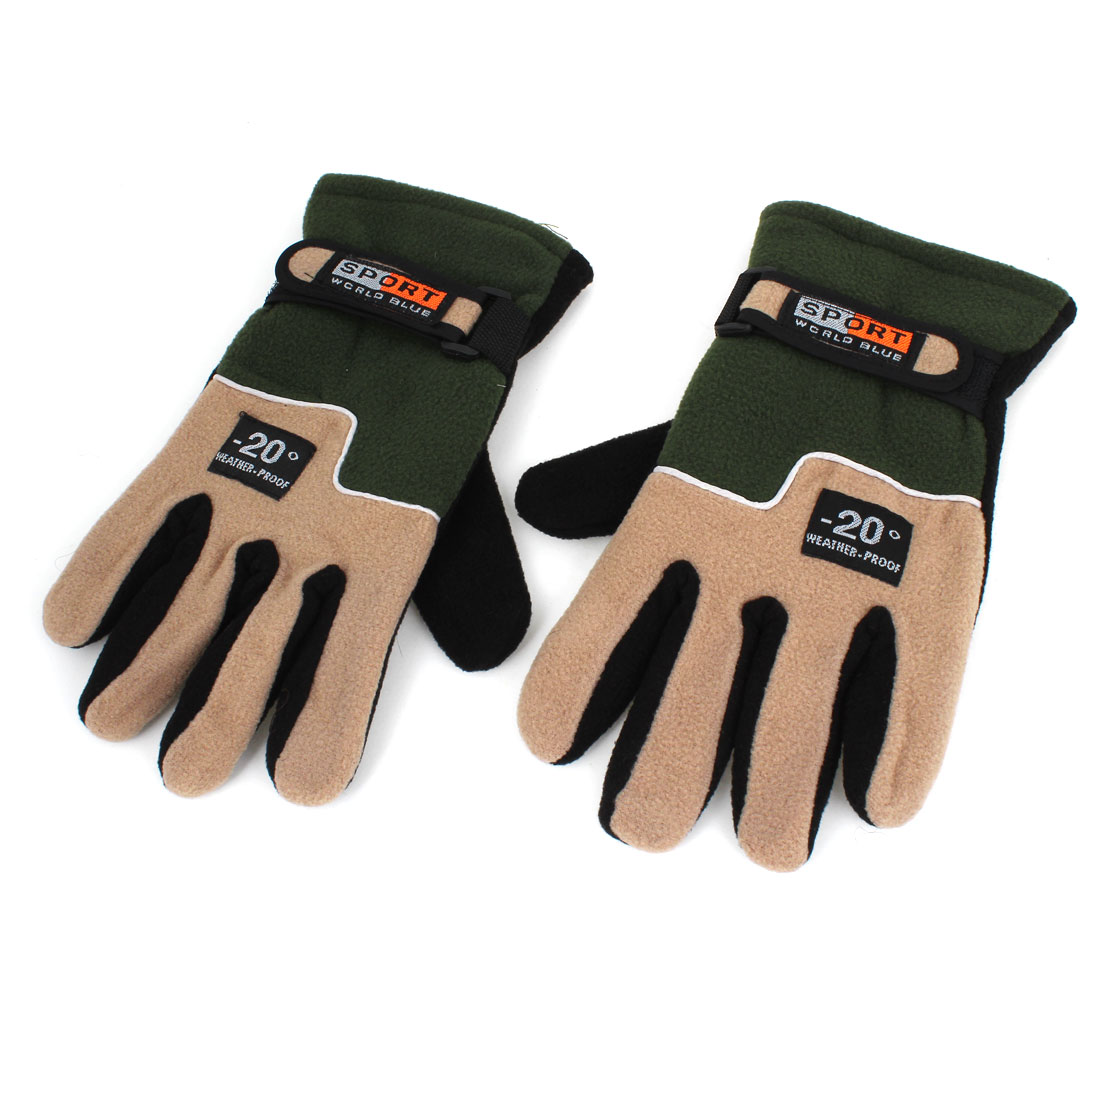 Pair Outdoor Cycling Skiing Fleece Thermal Winter Gloves Army Green for Unisex